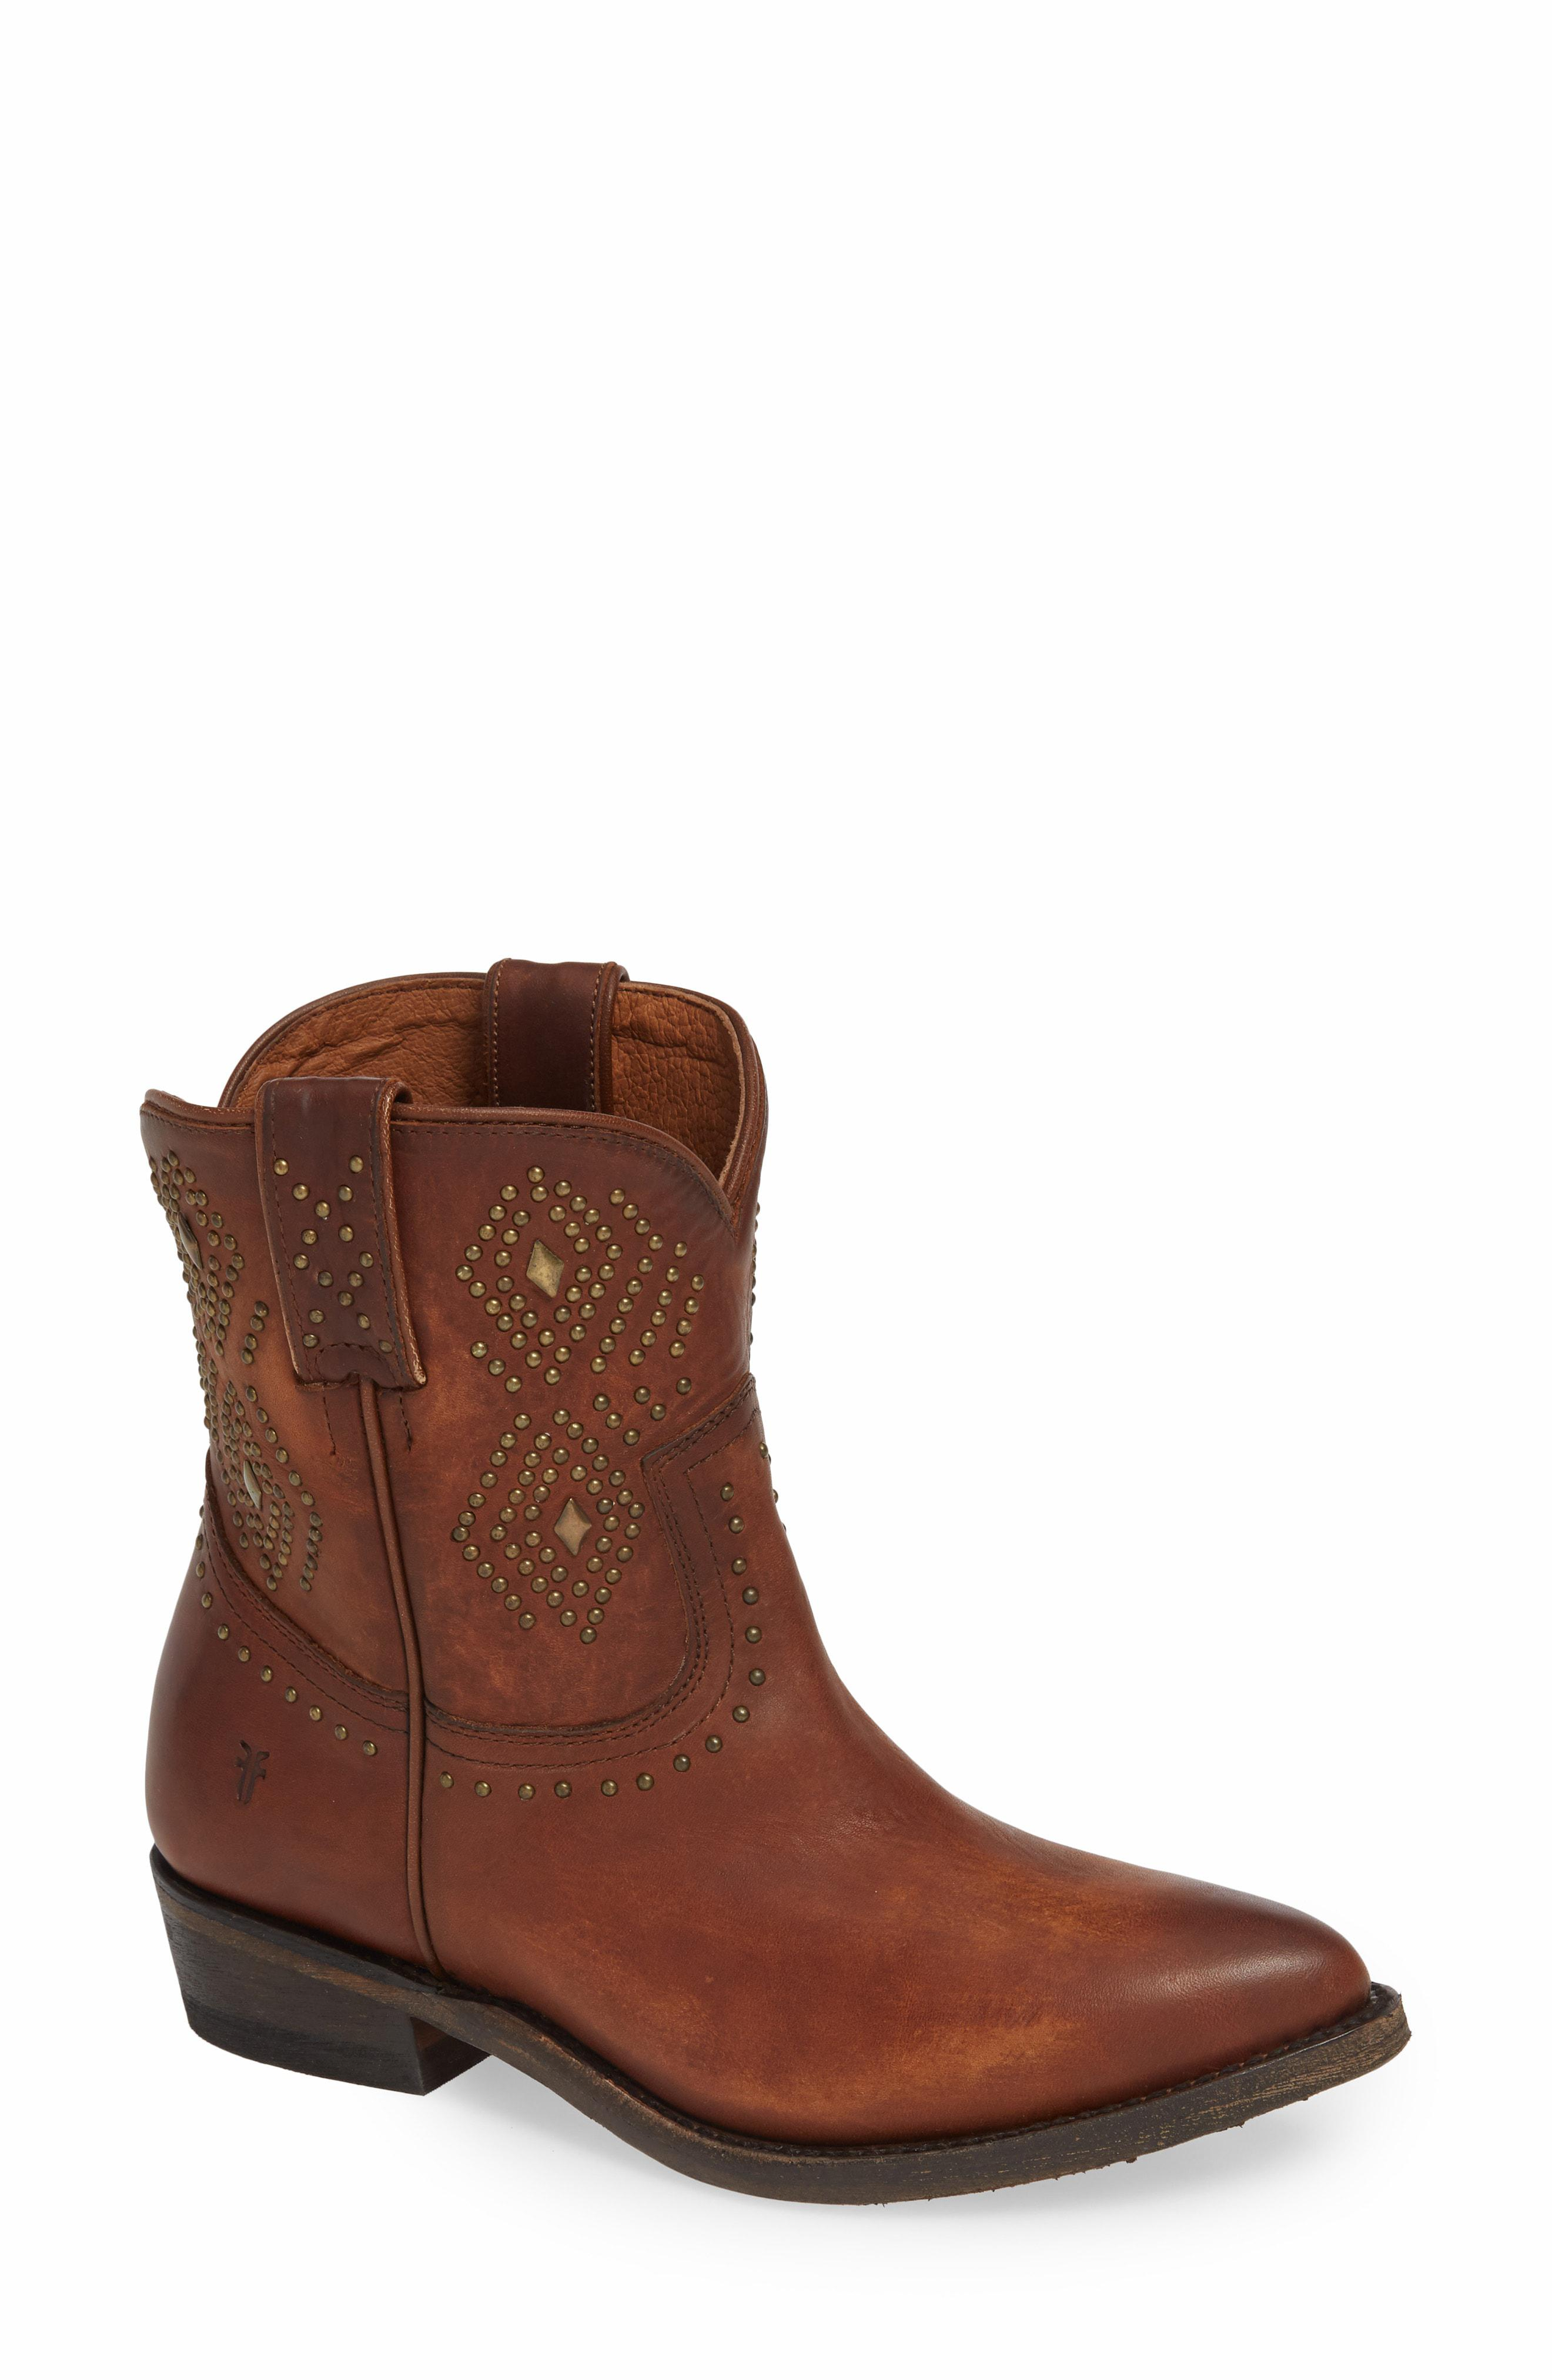 4eab5036bf6 Lyst - Frye Billy Stud Short Western Boot in Brown